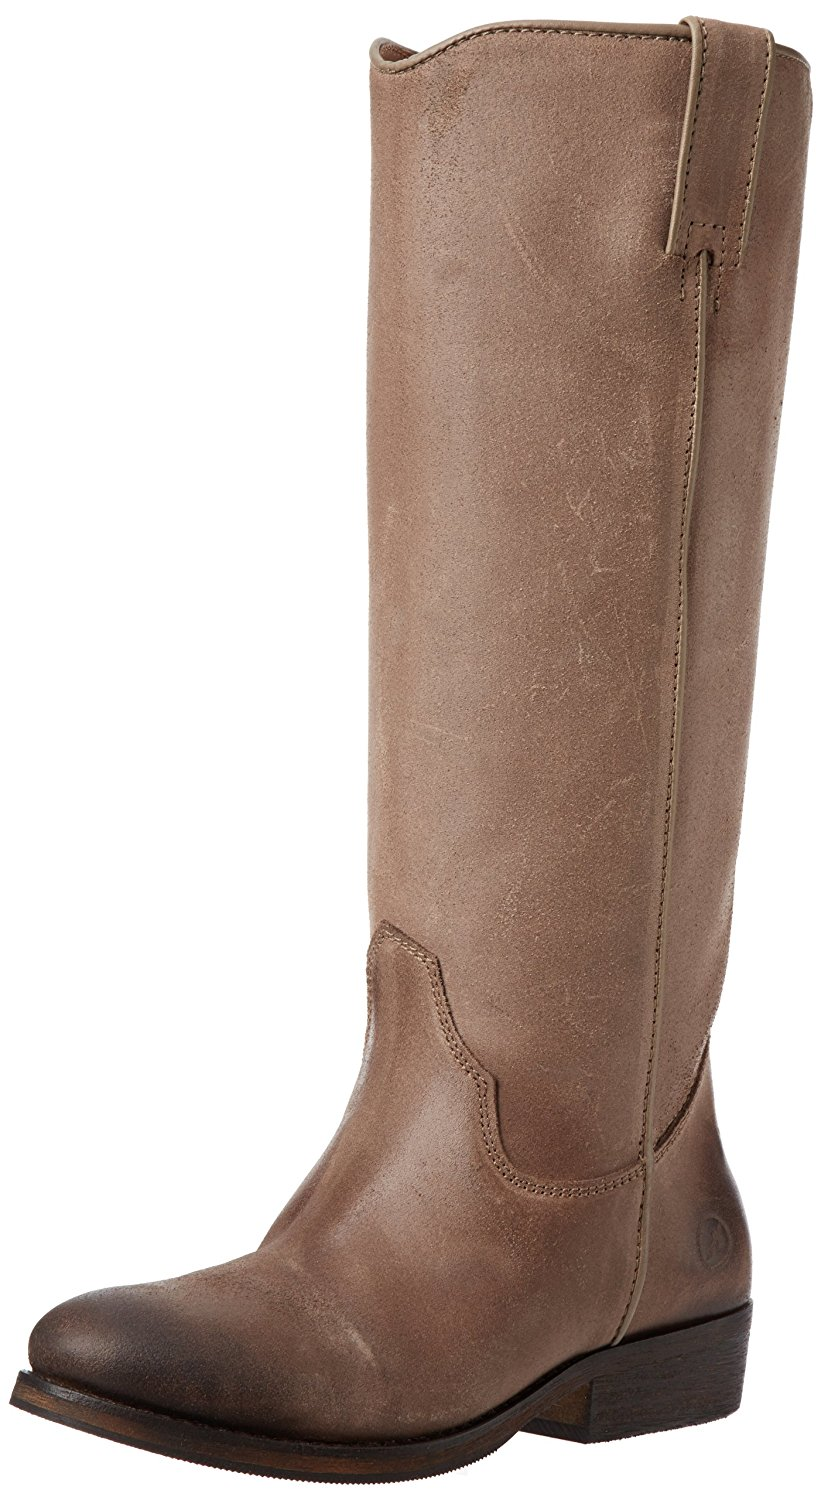 Diba True Women's Bronx Tam Mee Tall Leather Boots Taupe Rockleat (36.0 EU   6.0M US) by